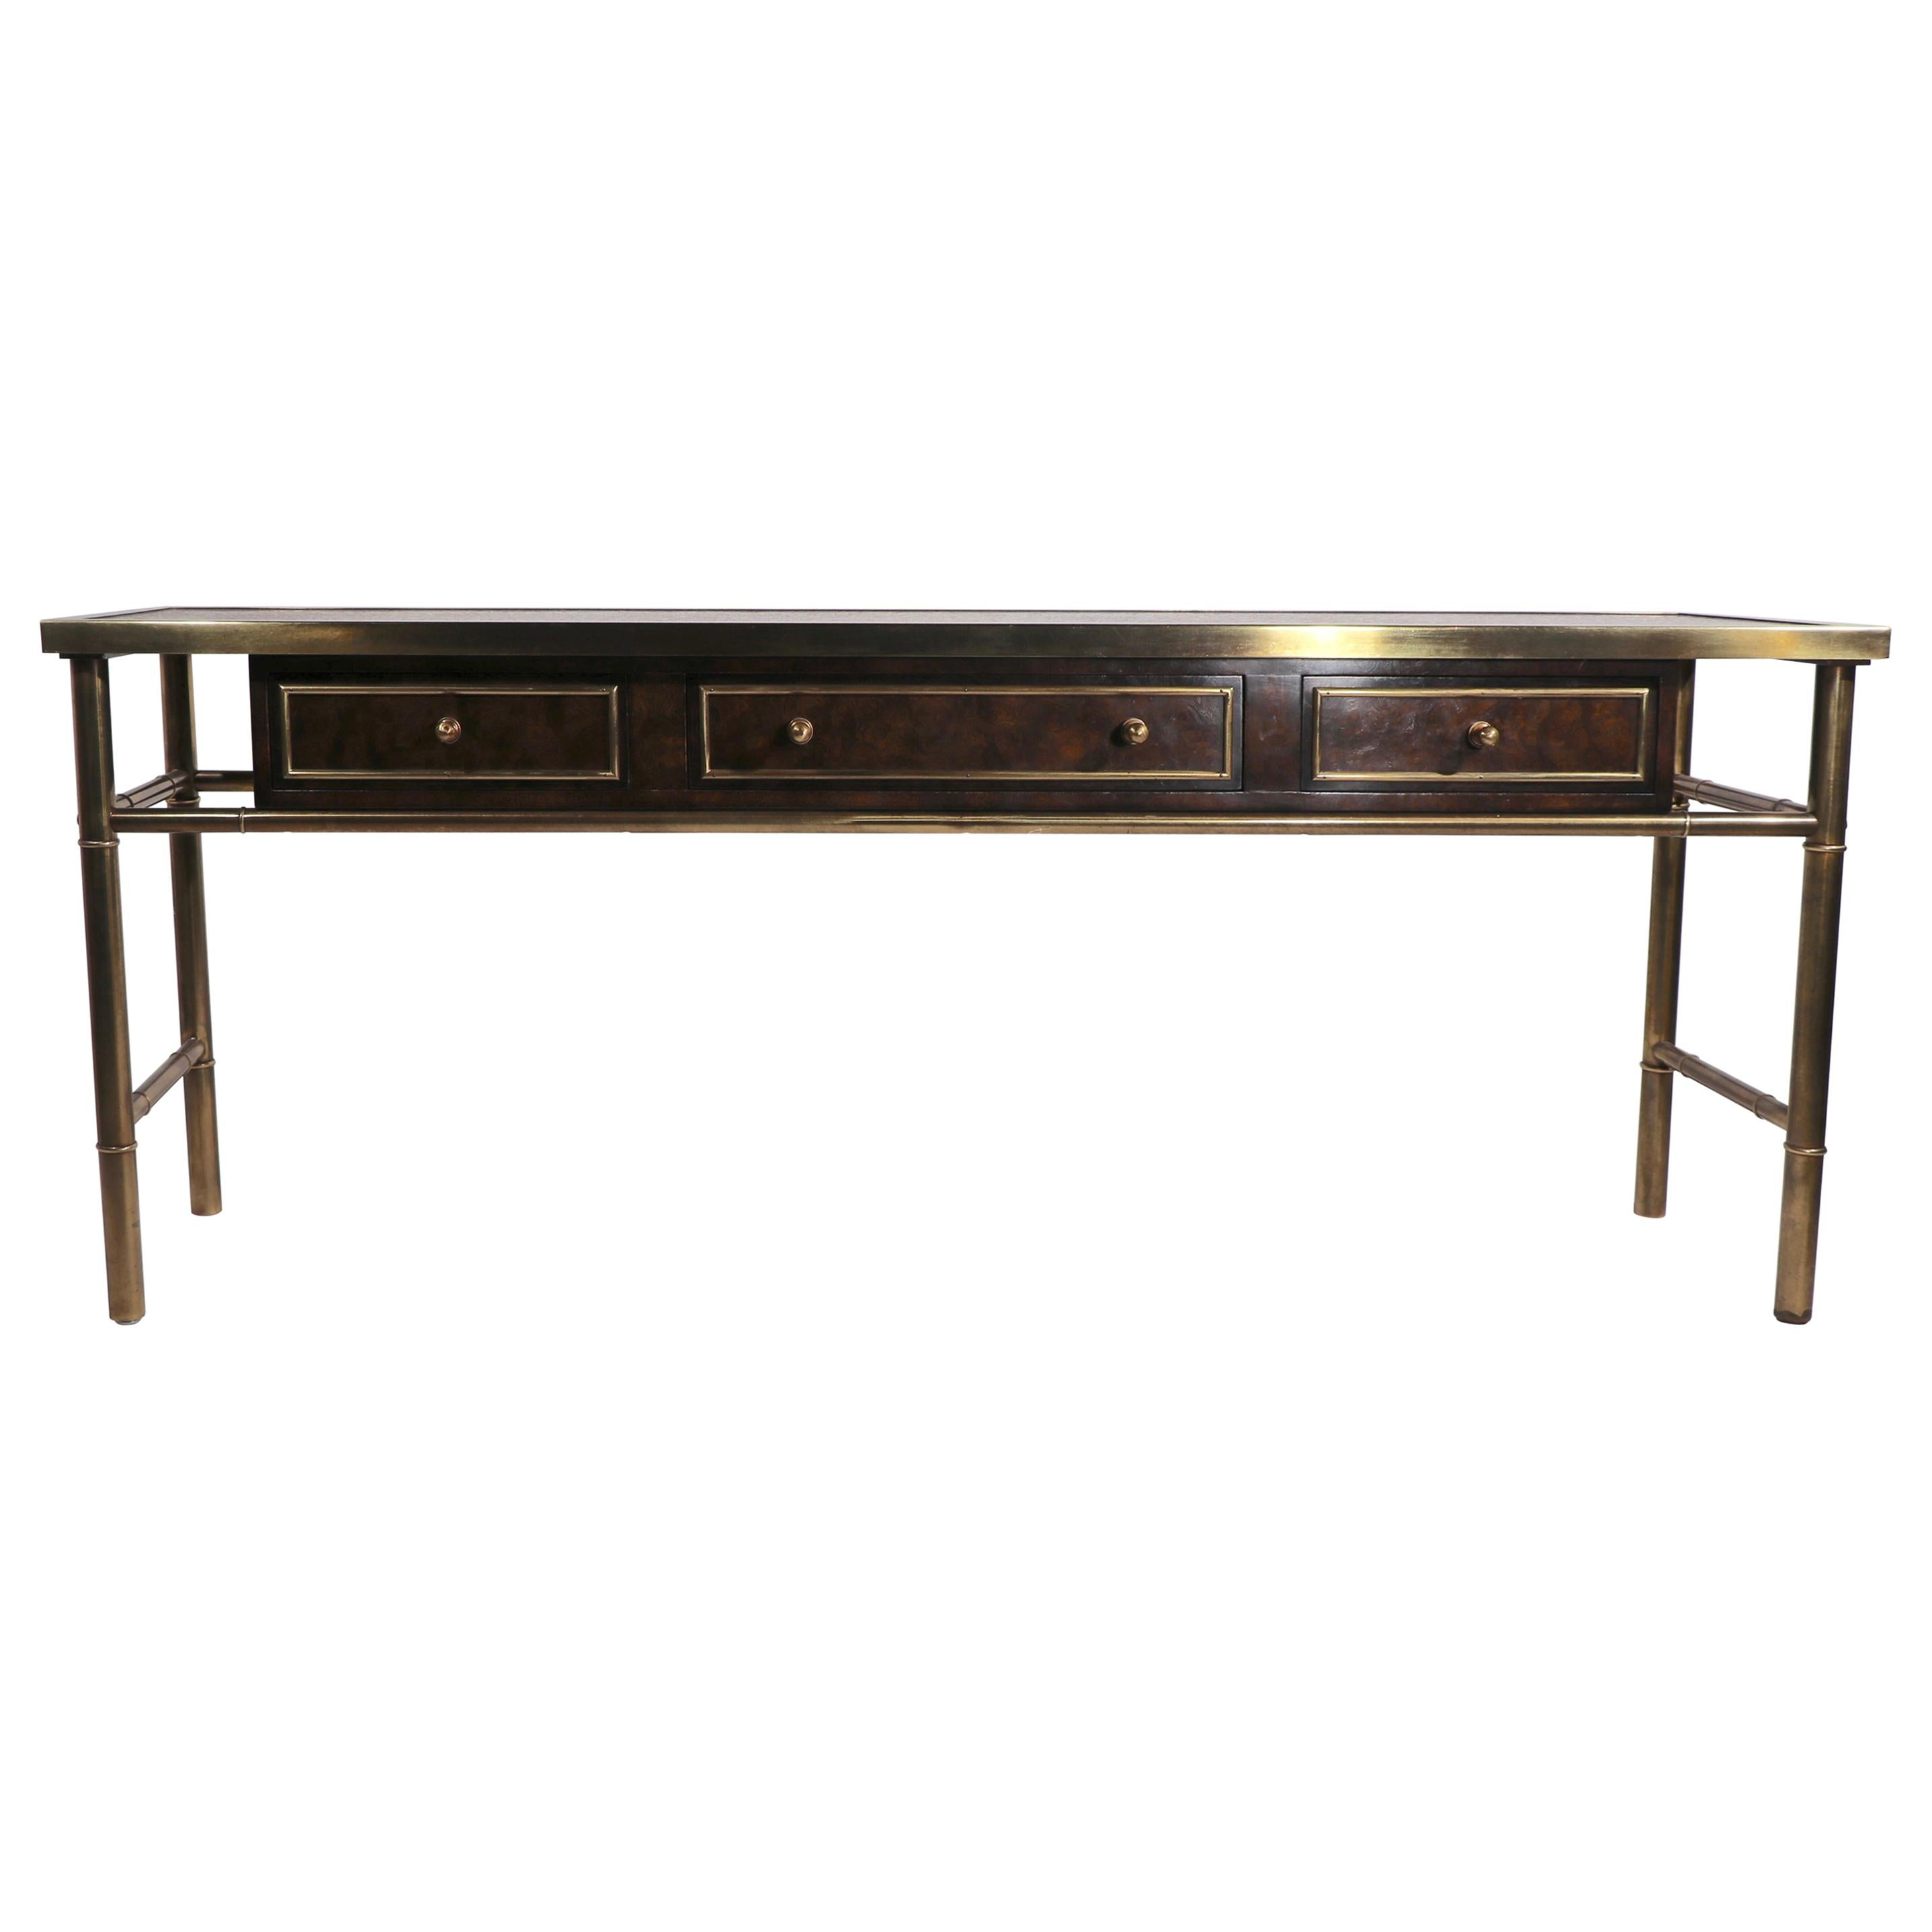 Mastercraft Console Sideboard Server in Brass and Wood